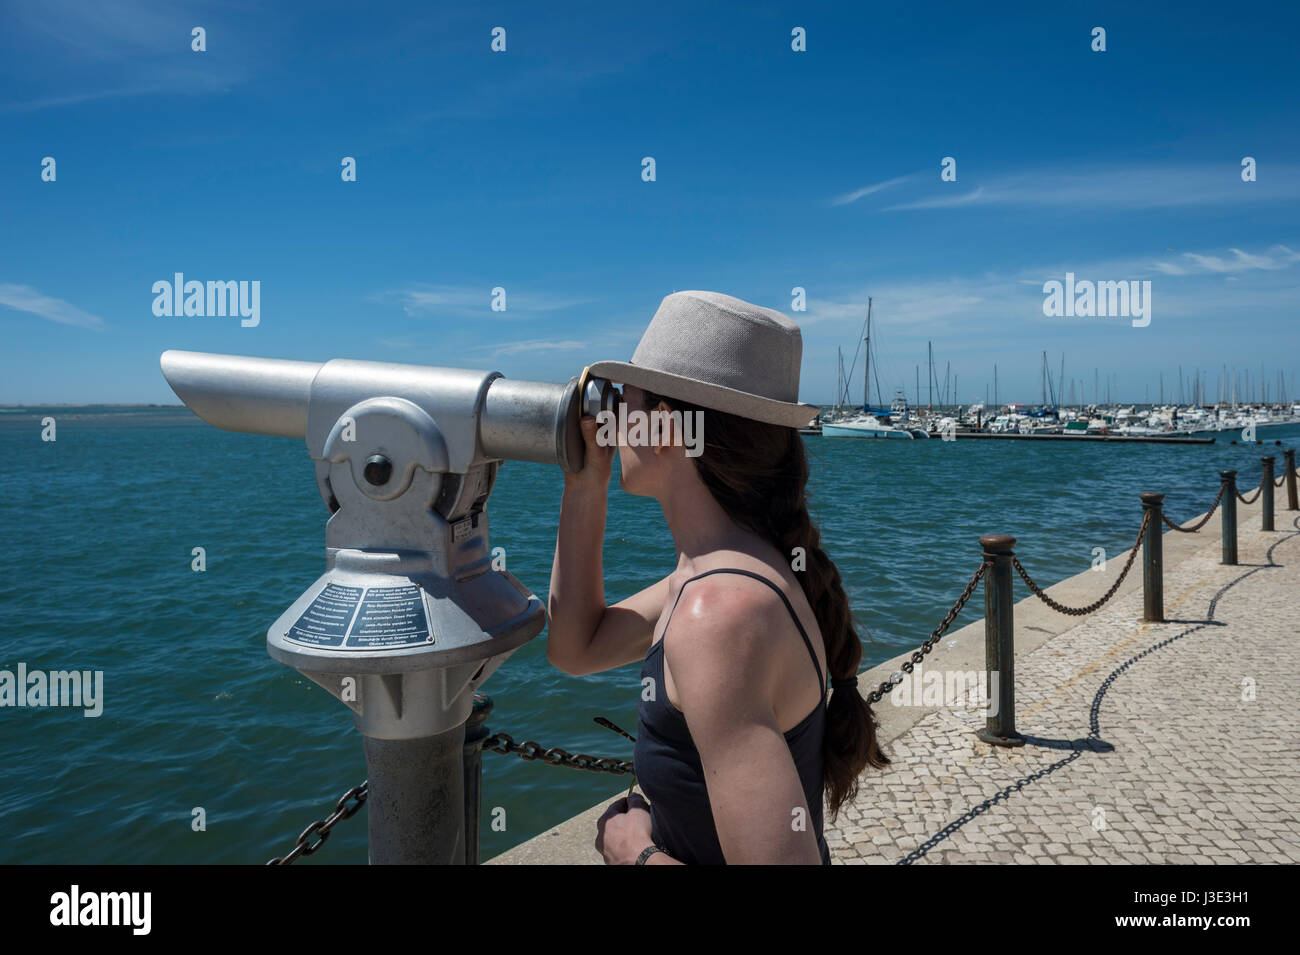 woman looking through a coin operated telescope on the seafront - Stock Image